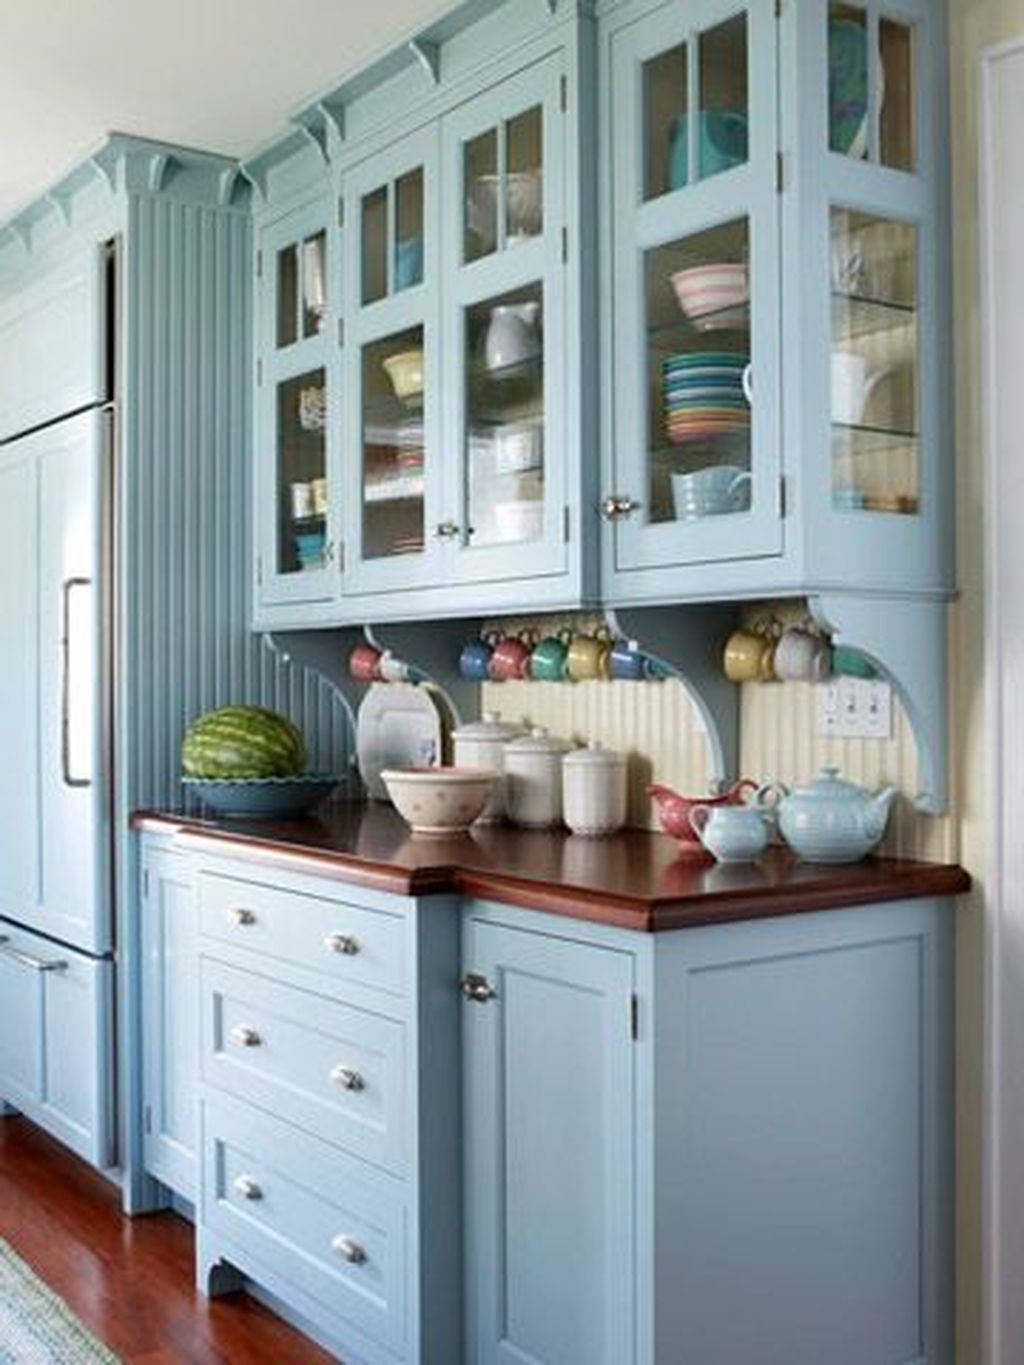 A Kitchen With Vintage Character: 48 The Best Vintage Kitchen Cabinets Ideas To Give Your